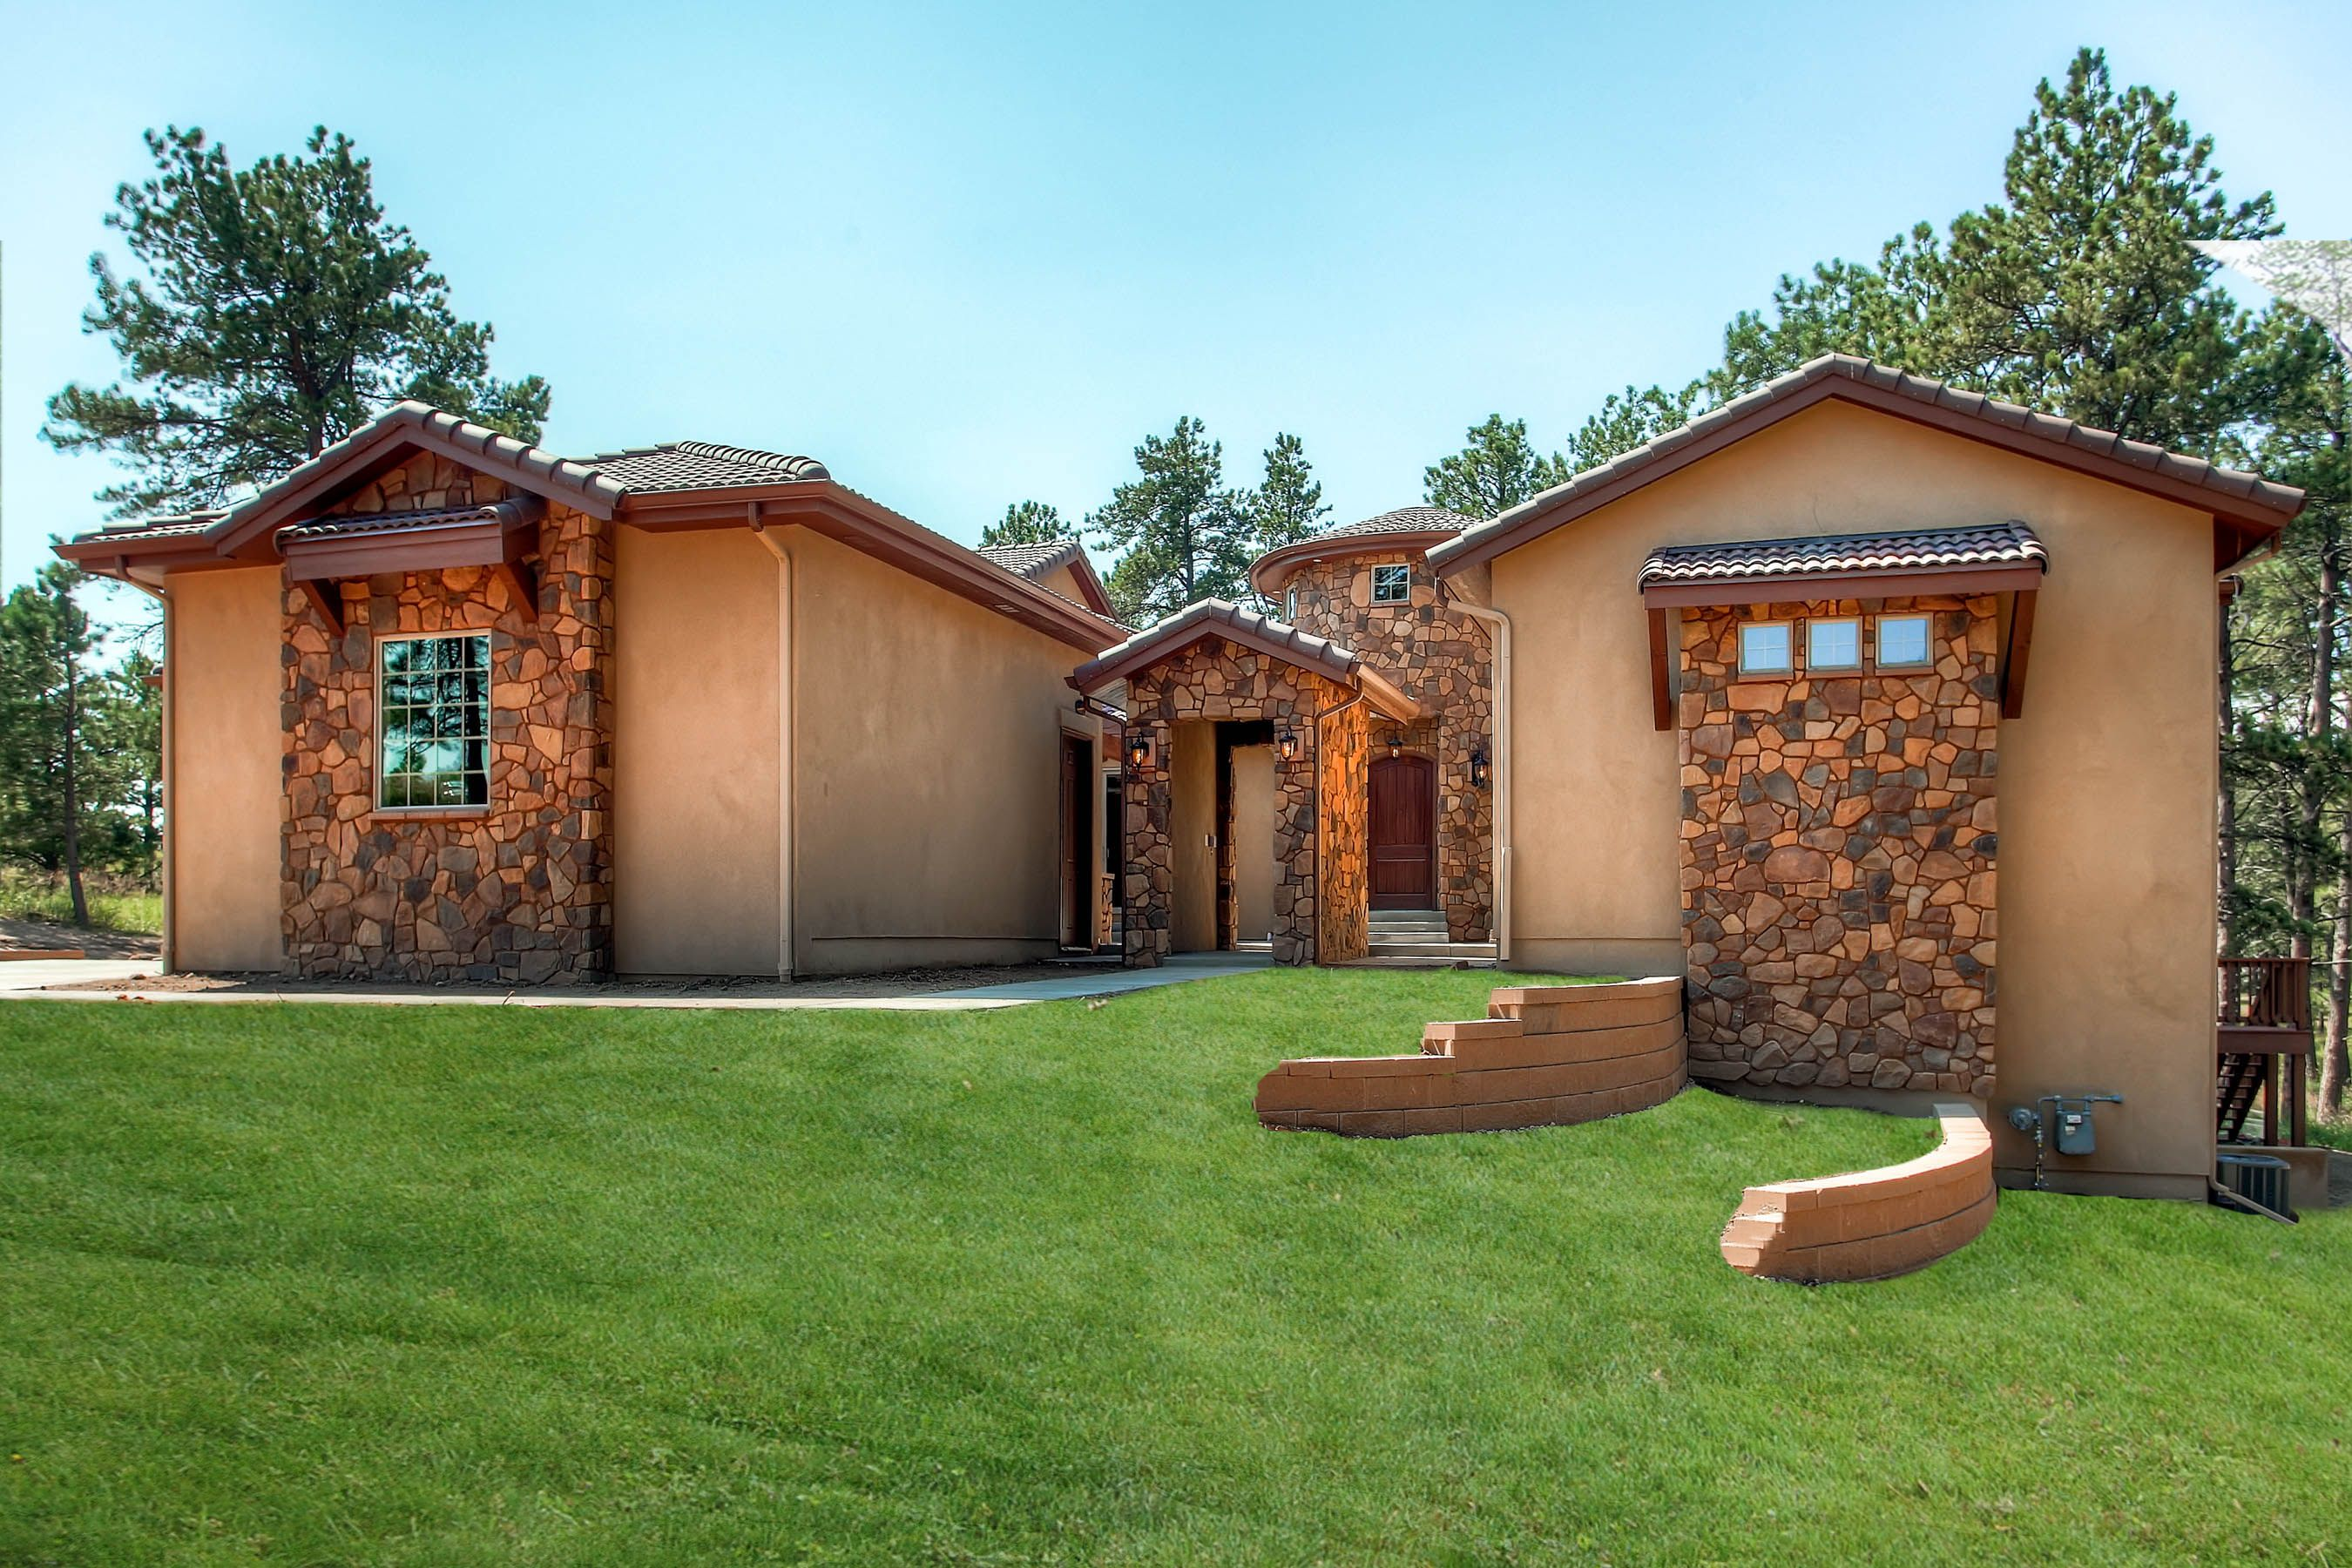 One of a kind ranch design with front courtyard